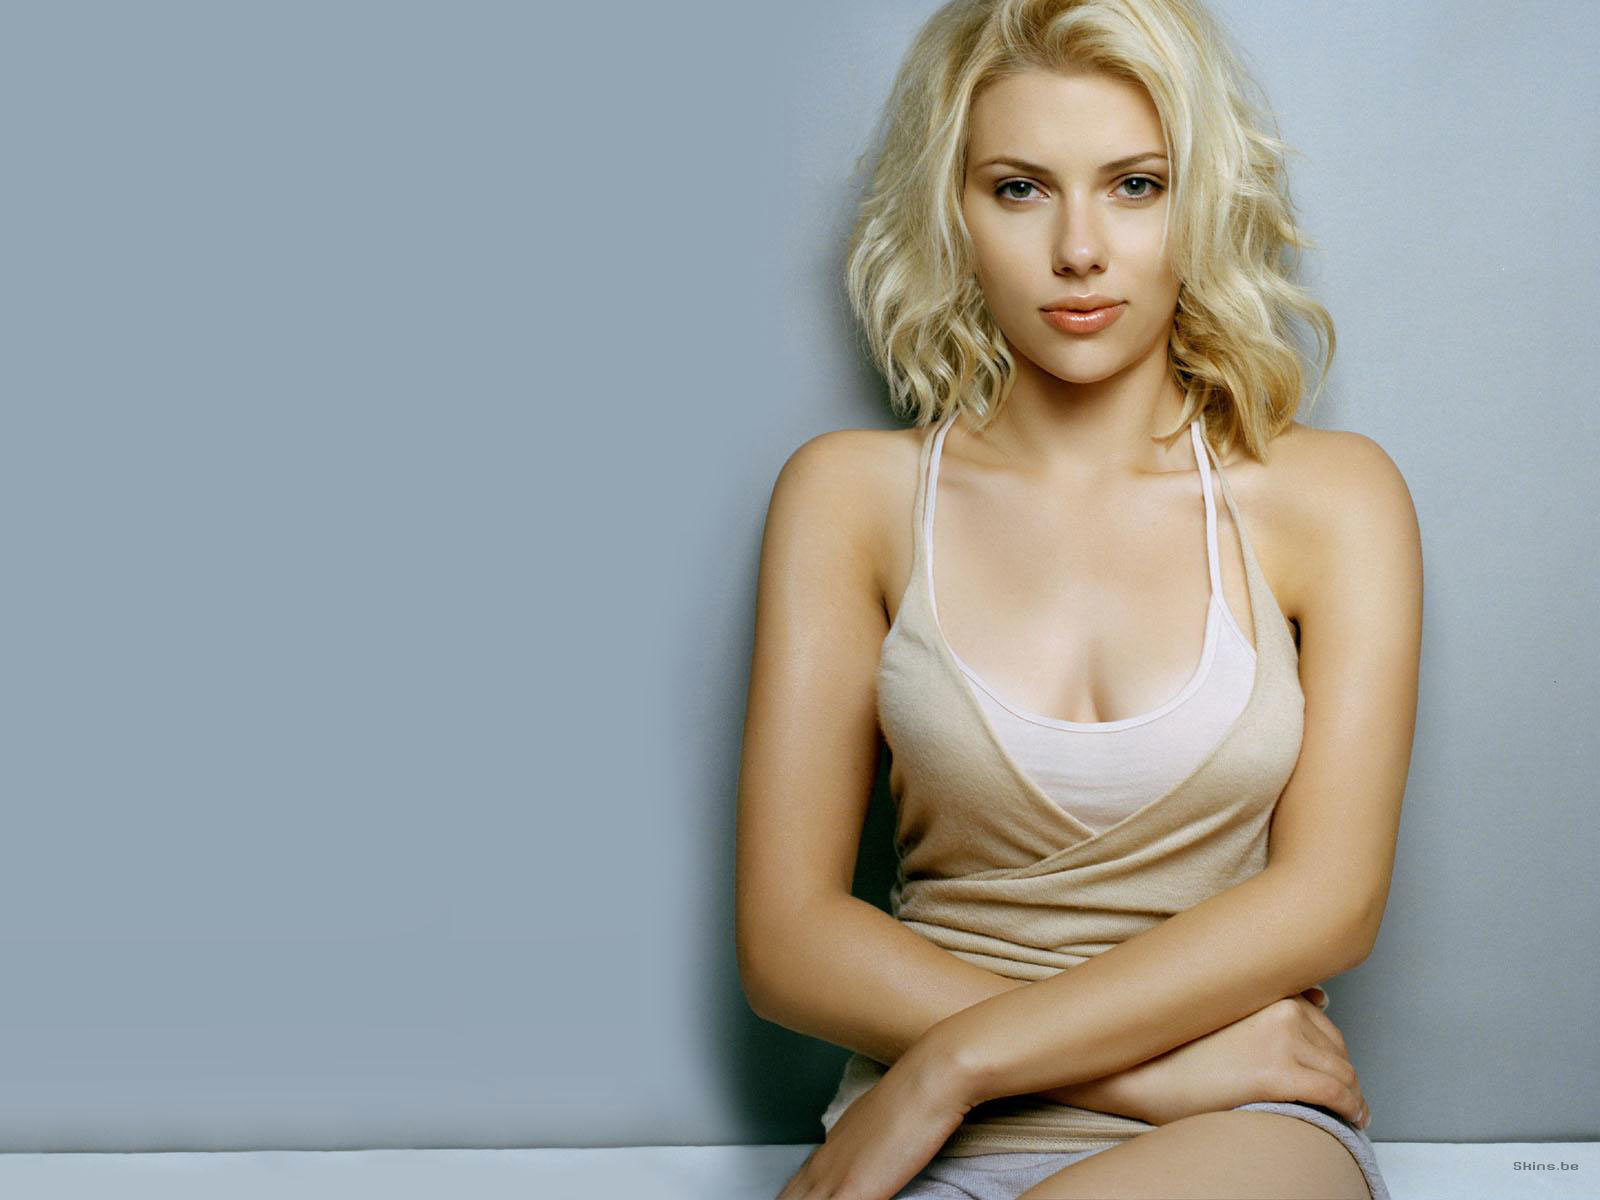 Download hd 1600x1200 Scarlett Johansson computer wallpaper ID:74495 for free